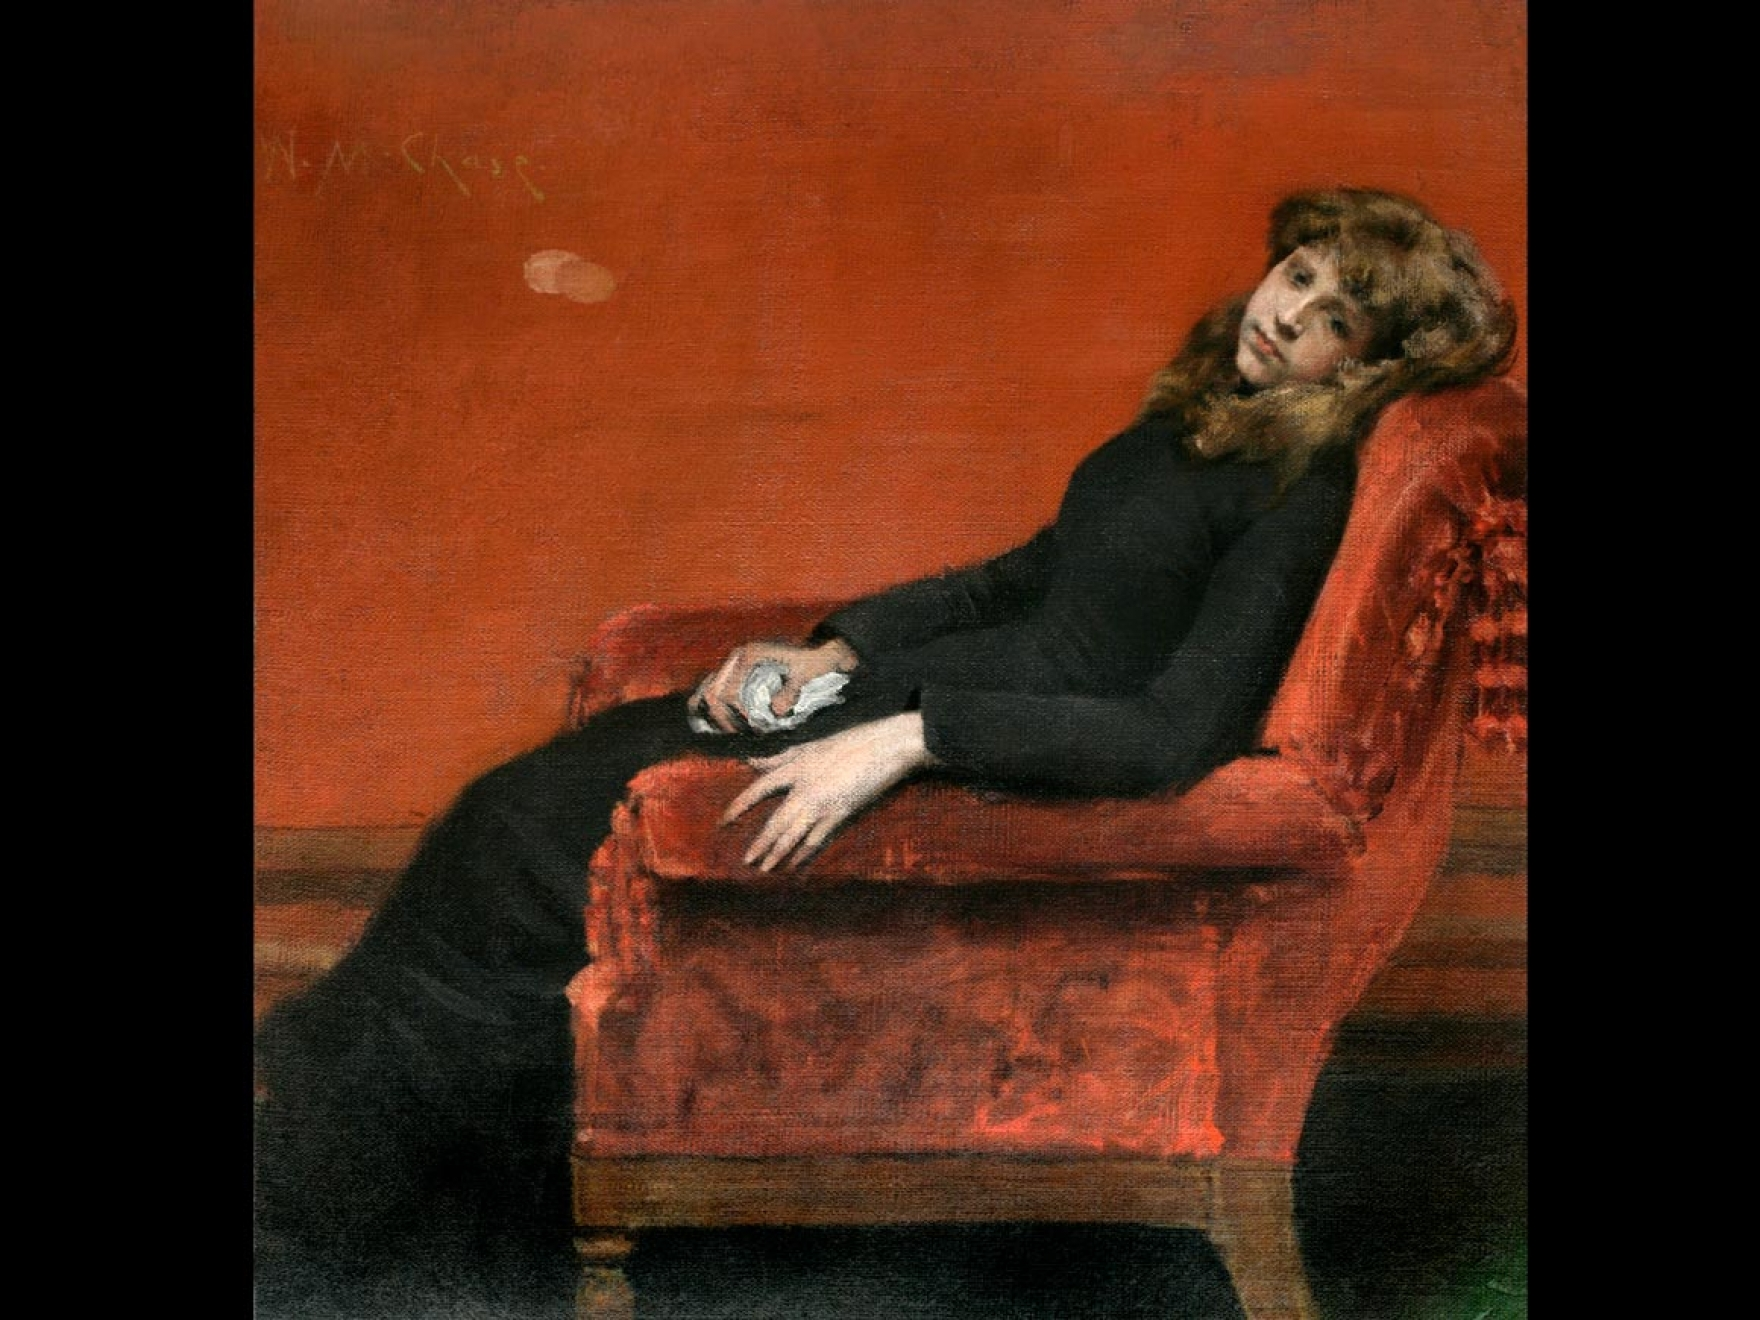 Painting of woman slumped in a chair